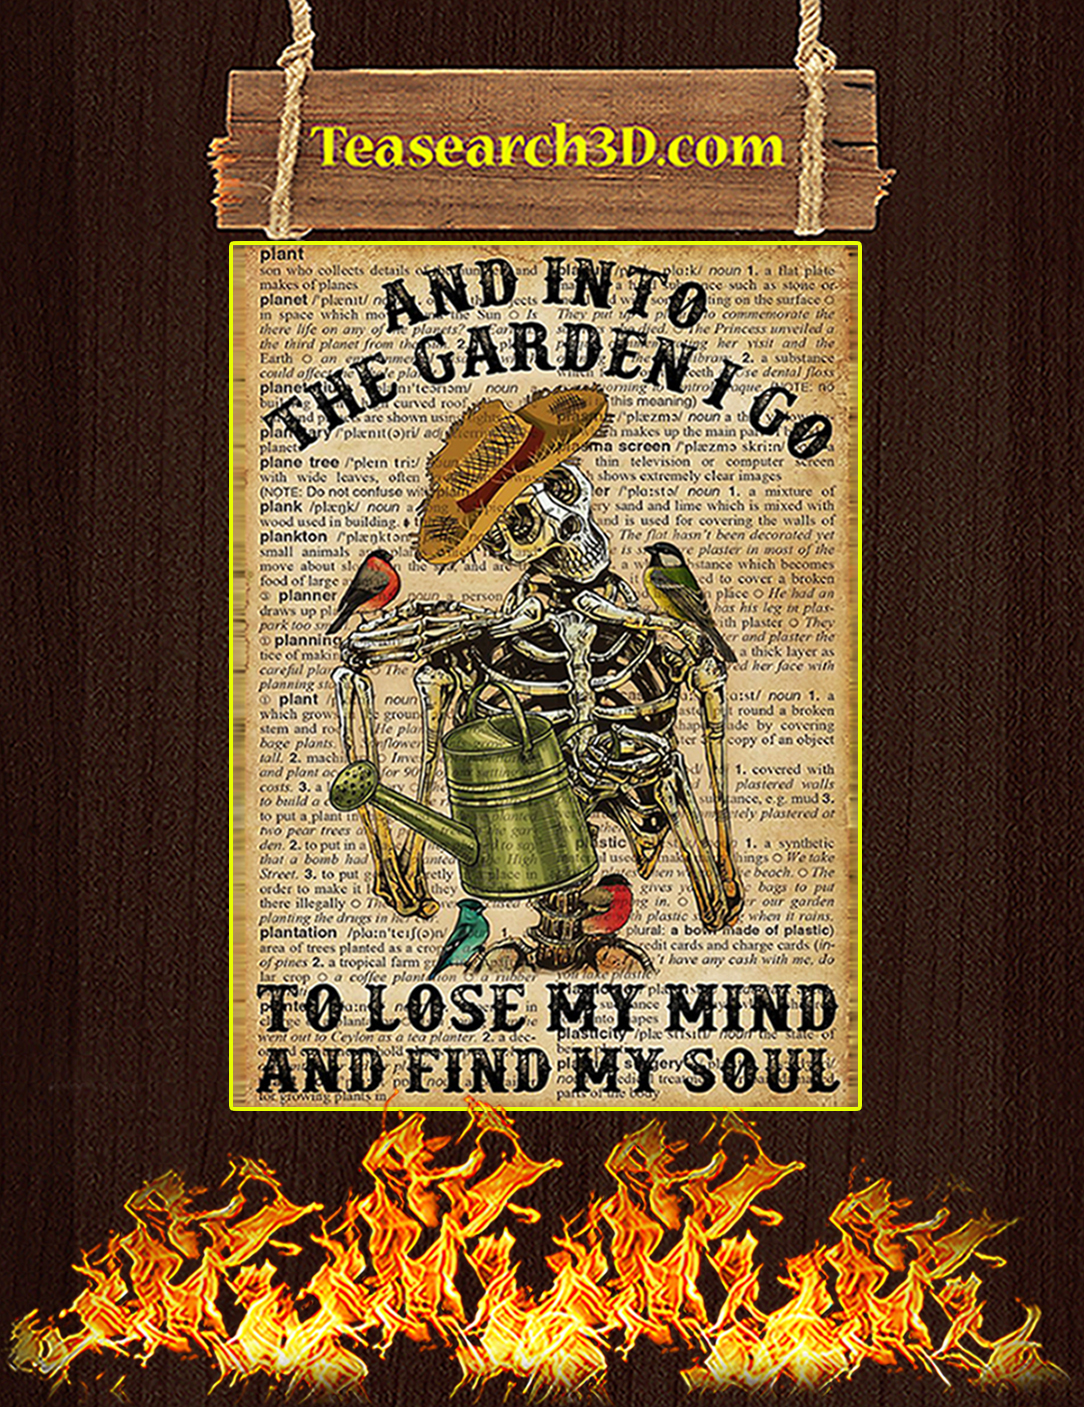 Skeleton And into the garden I go poster A2